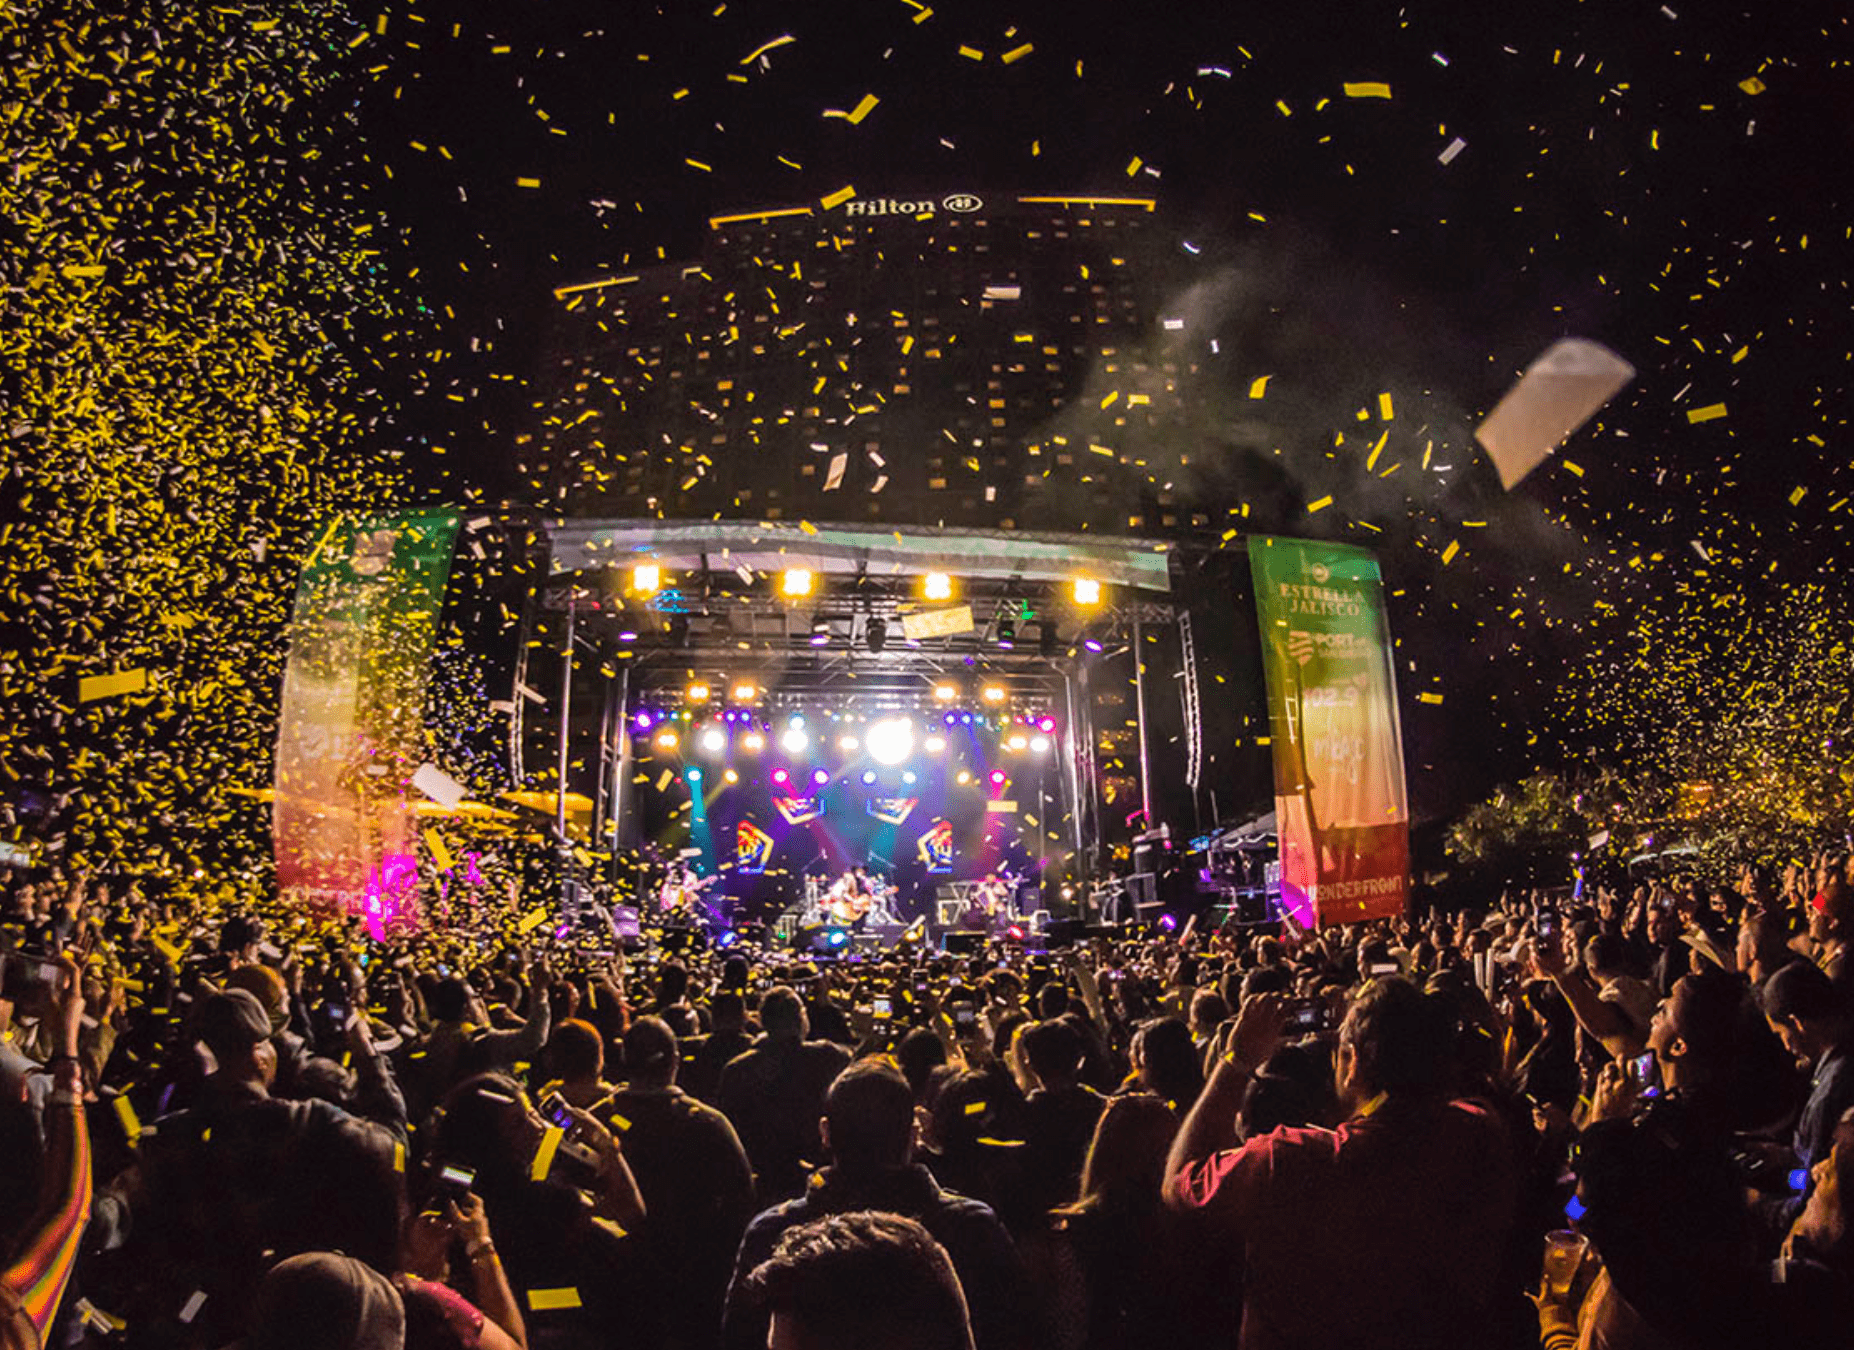 How to Attend Music Festivals On a Student Budget: Top 5 Tips